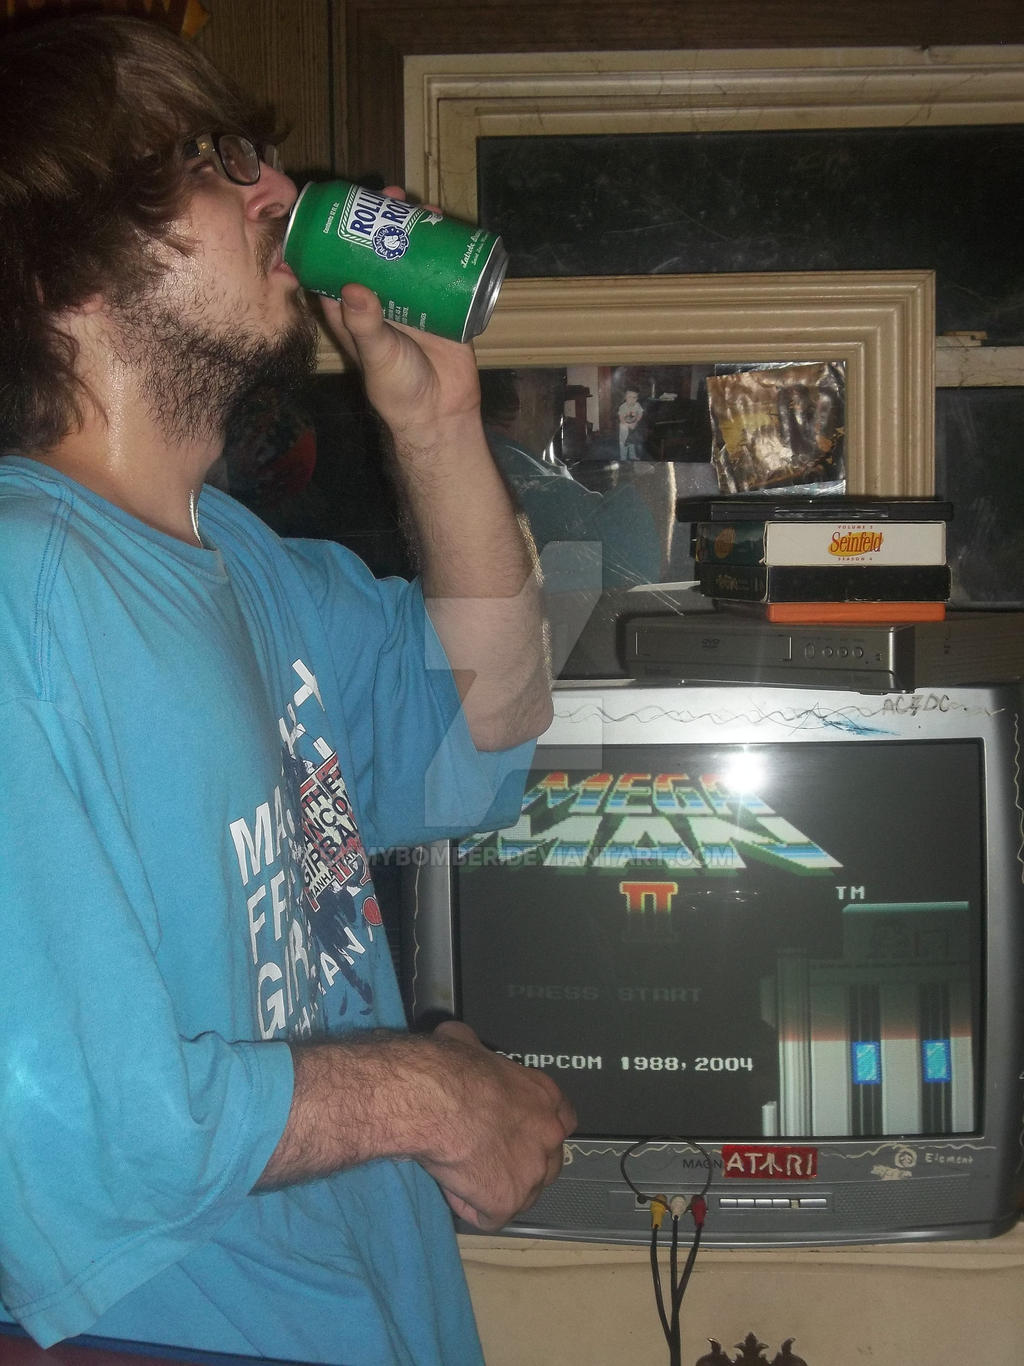 rolling rock to MegaMan 2